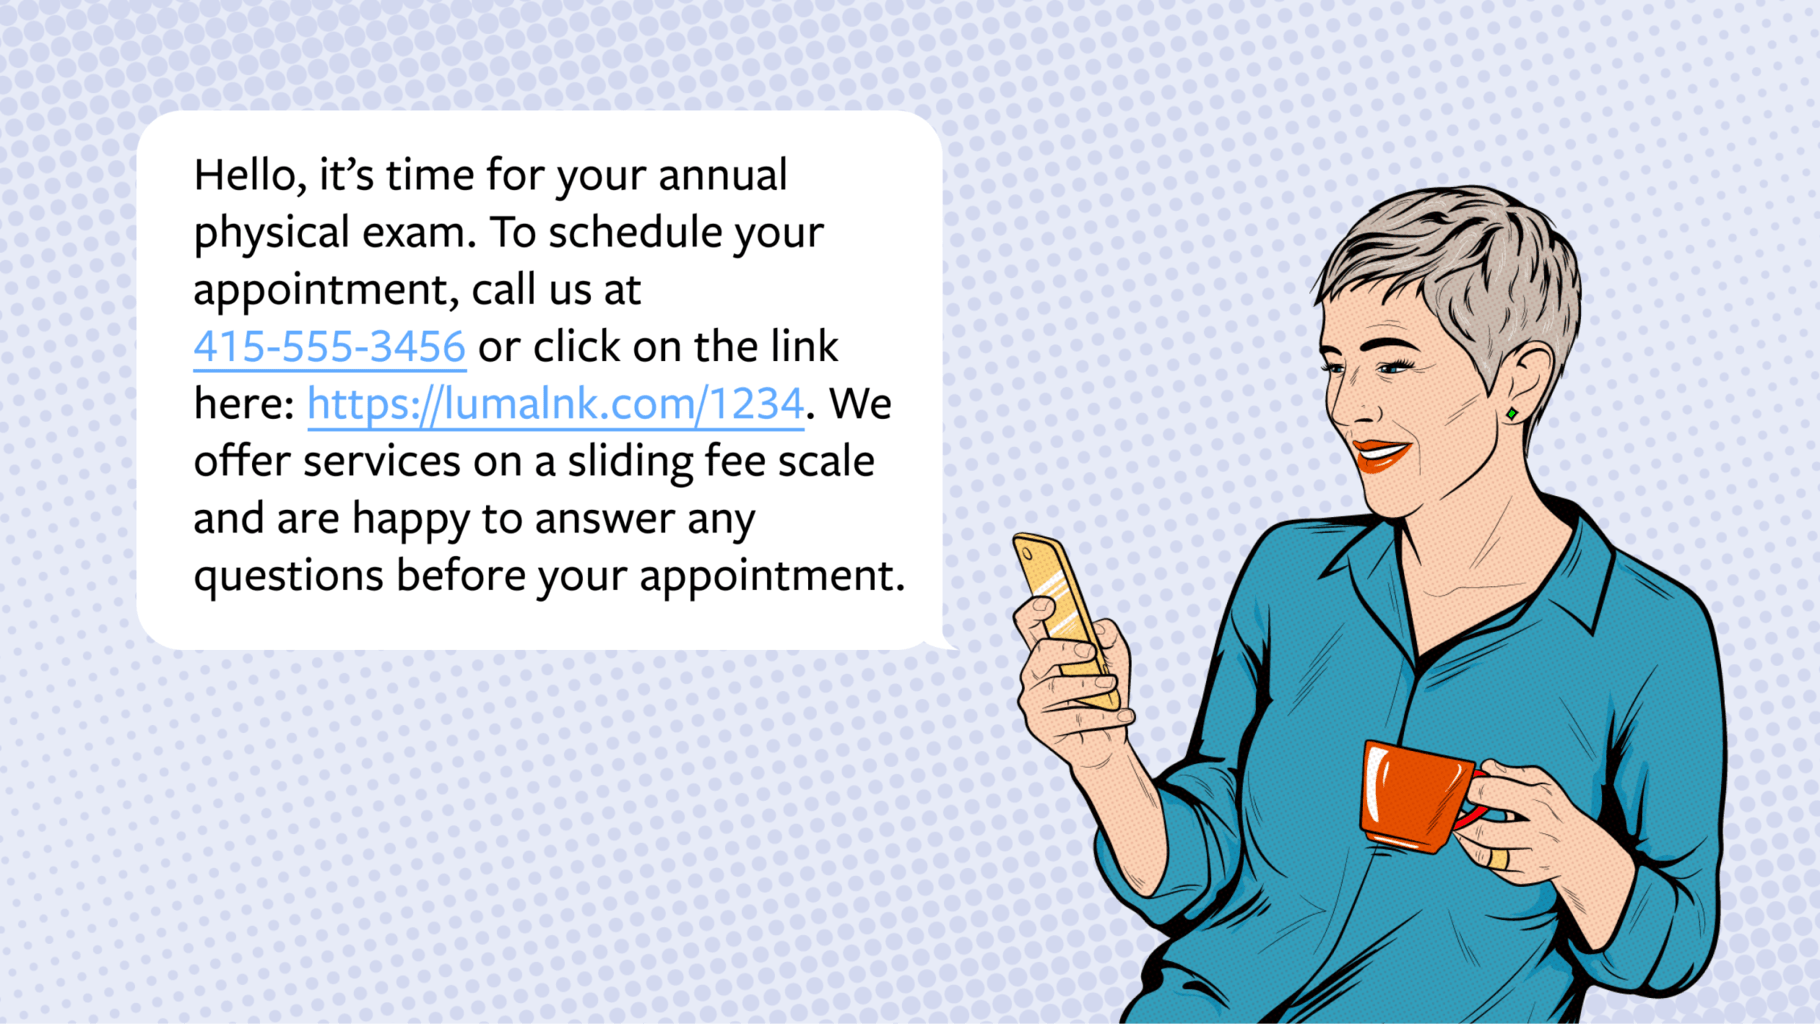 Illustration of a person looking at their phone, with copy showing a notification that it's time for them to have their annual exam